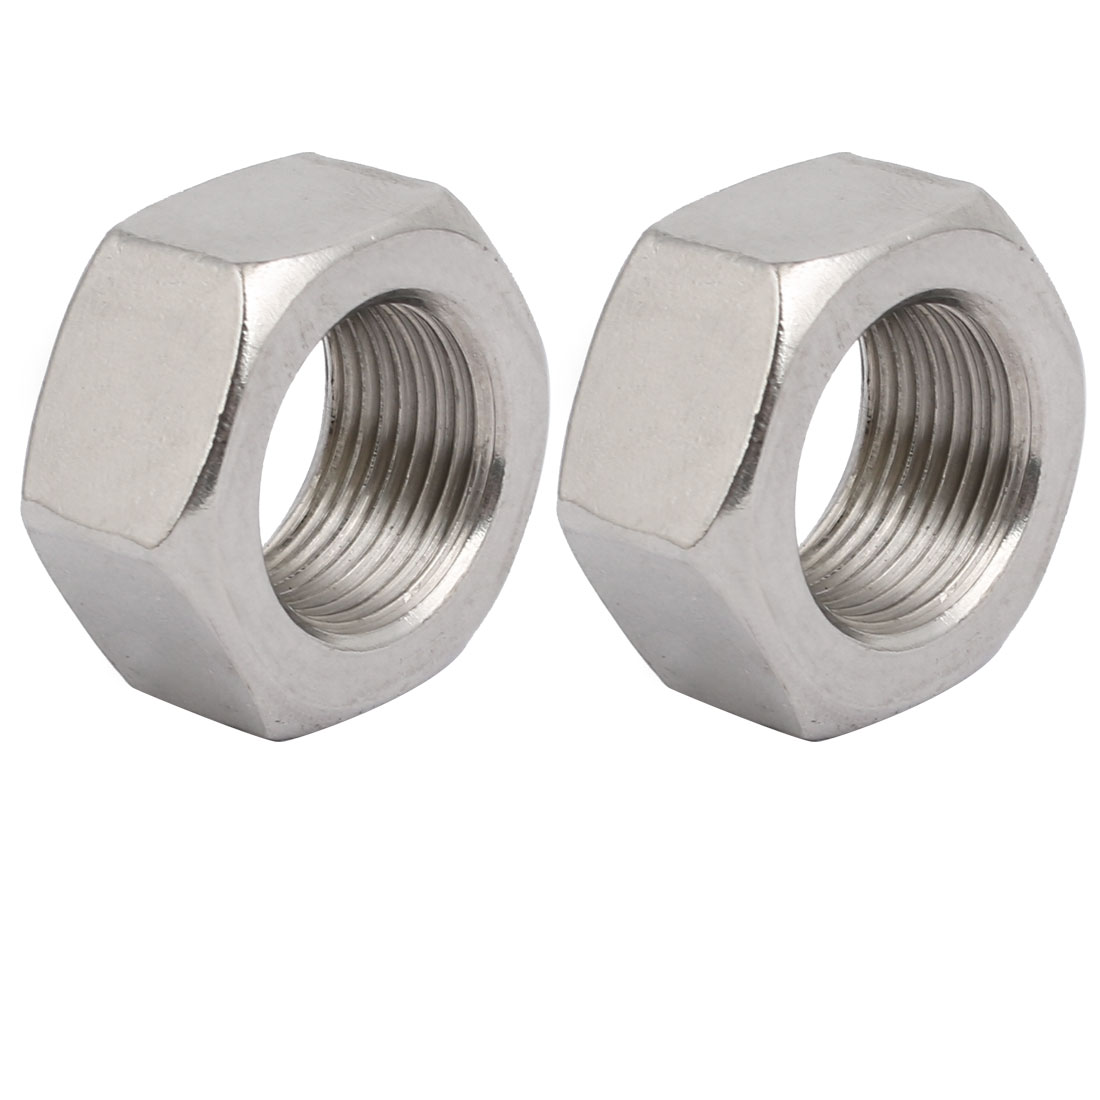 2pcs M20 x 1.5mm Pitch Metric Fine Thread 304 Stainless Steel Hex Nuts